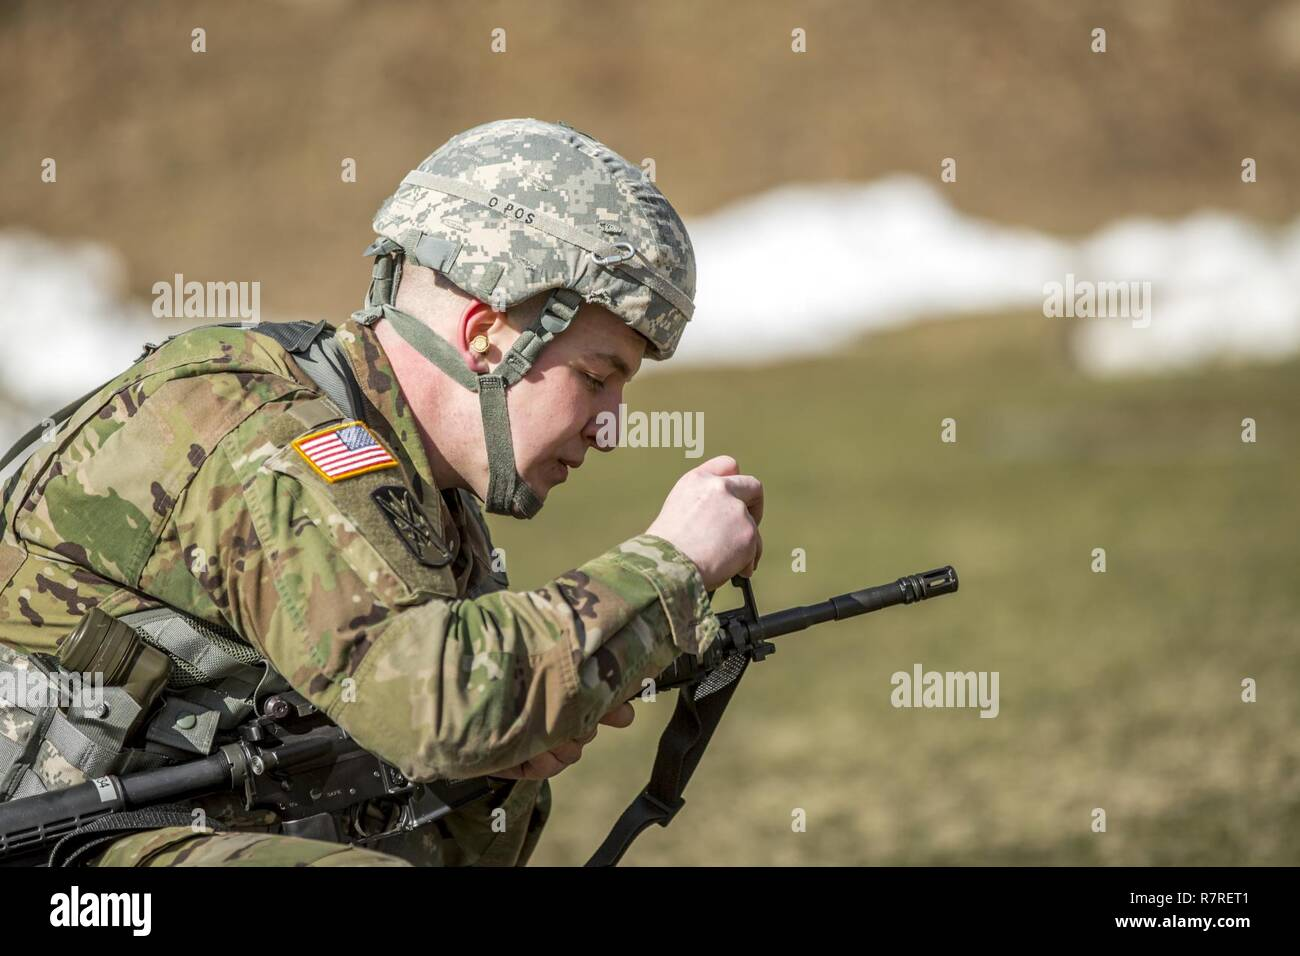 U.S. Army Spc. Mitchell Cooper adjusts his M4's front sights before shooting a weapon qualification during the New York Army National Guard Best Warrior Competition at Camp Smith Training Site March 30, 2017. The Best Warrior competitors represent each of New York's brigades after winning competitions at the company, battalion, and brigade levels. Stock Photo